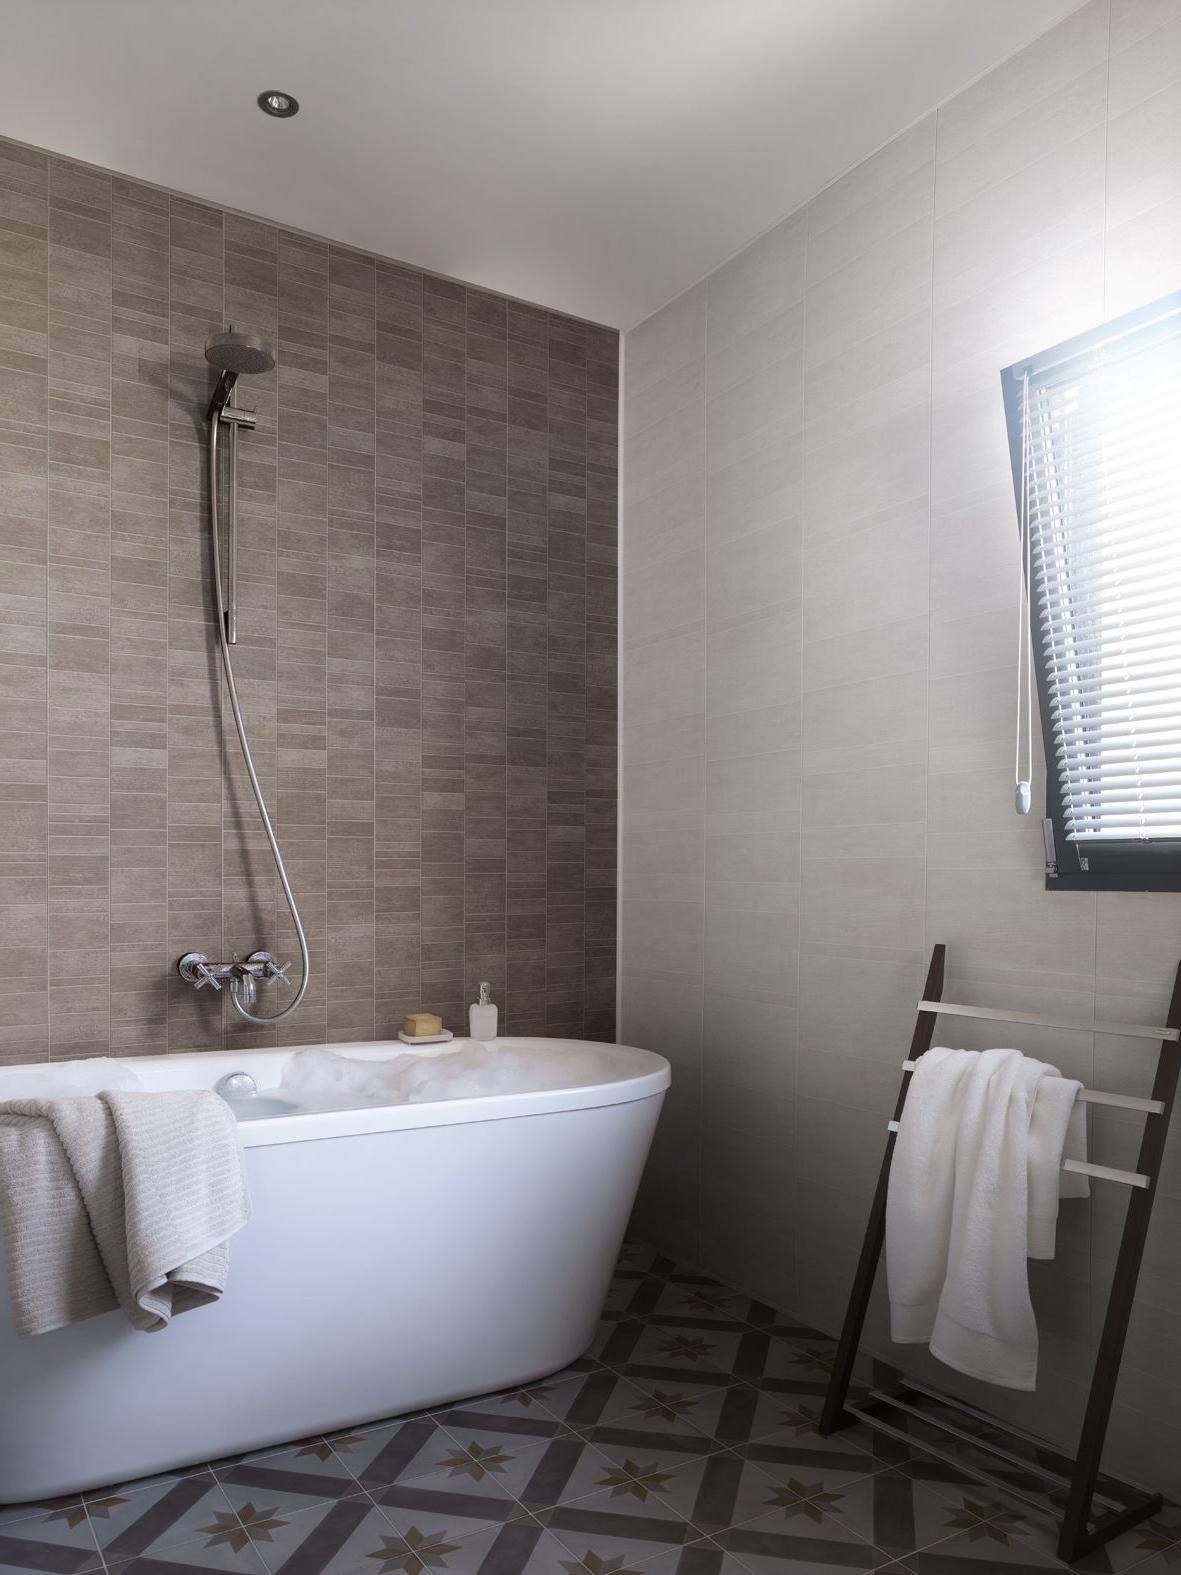 Pvc Wall Panelling An Easy Clean, Waterproof And Low Pvc Cladding Bathroom